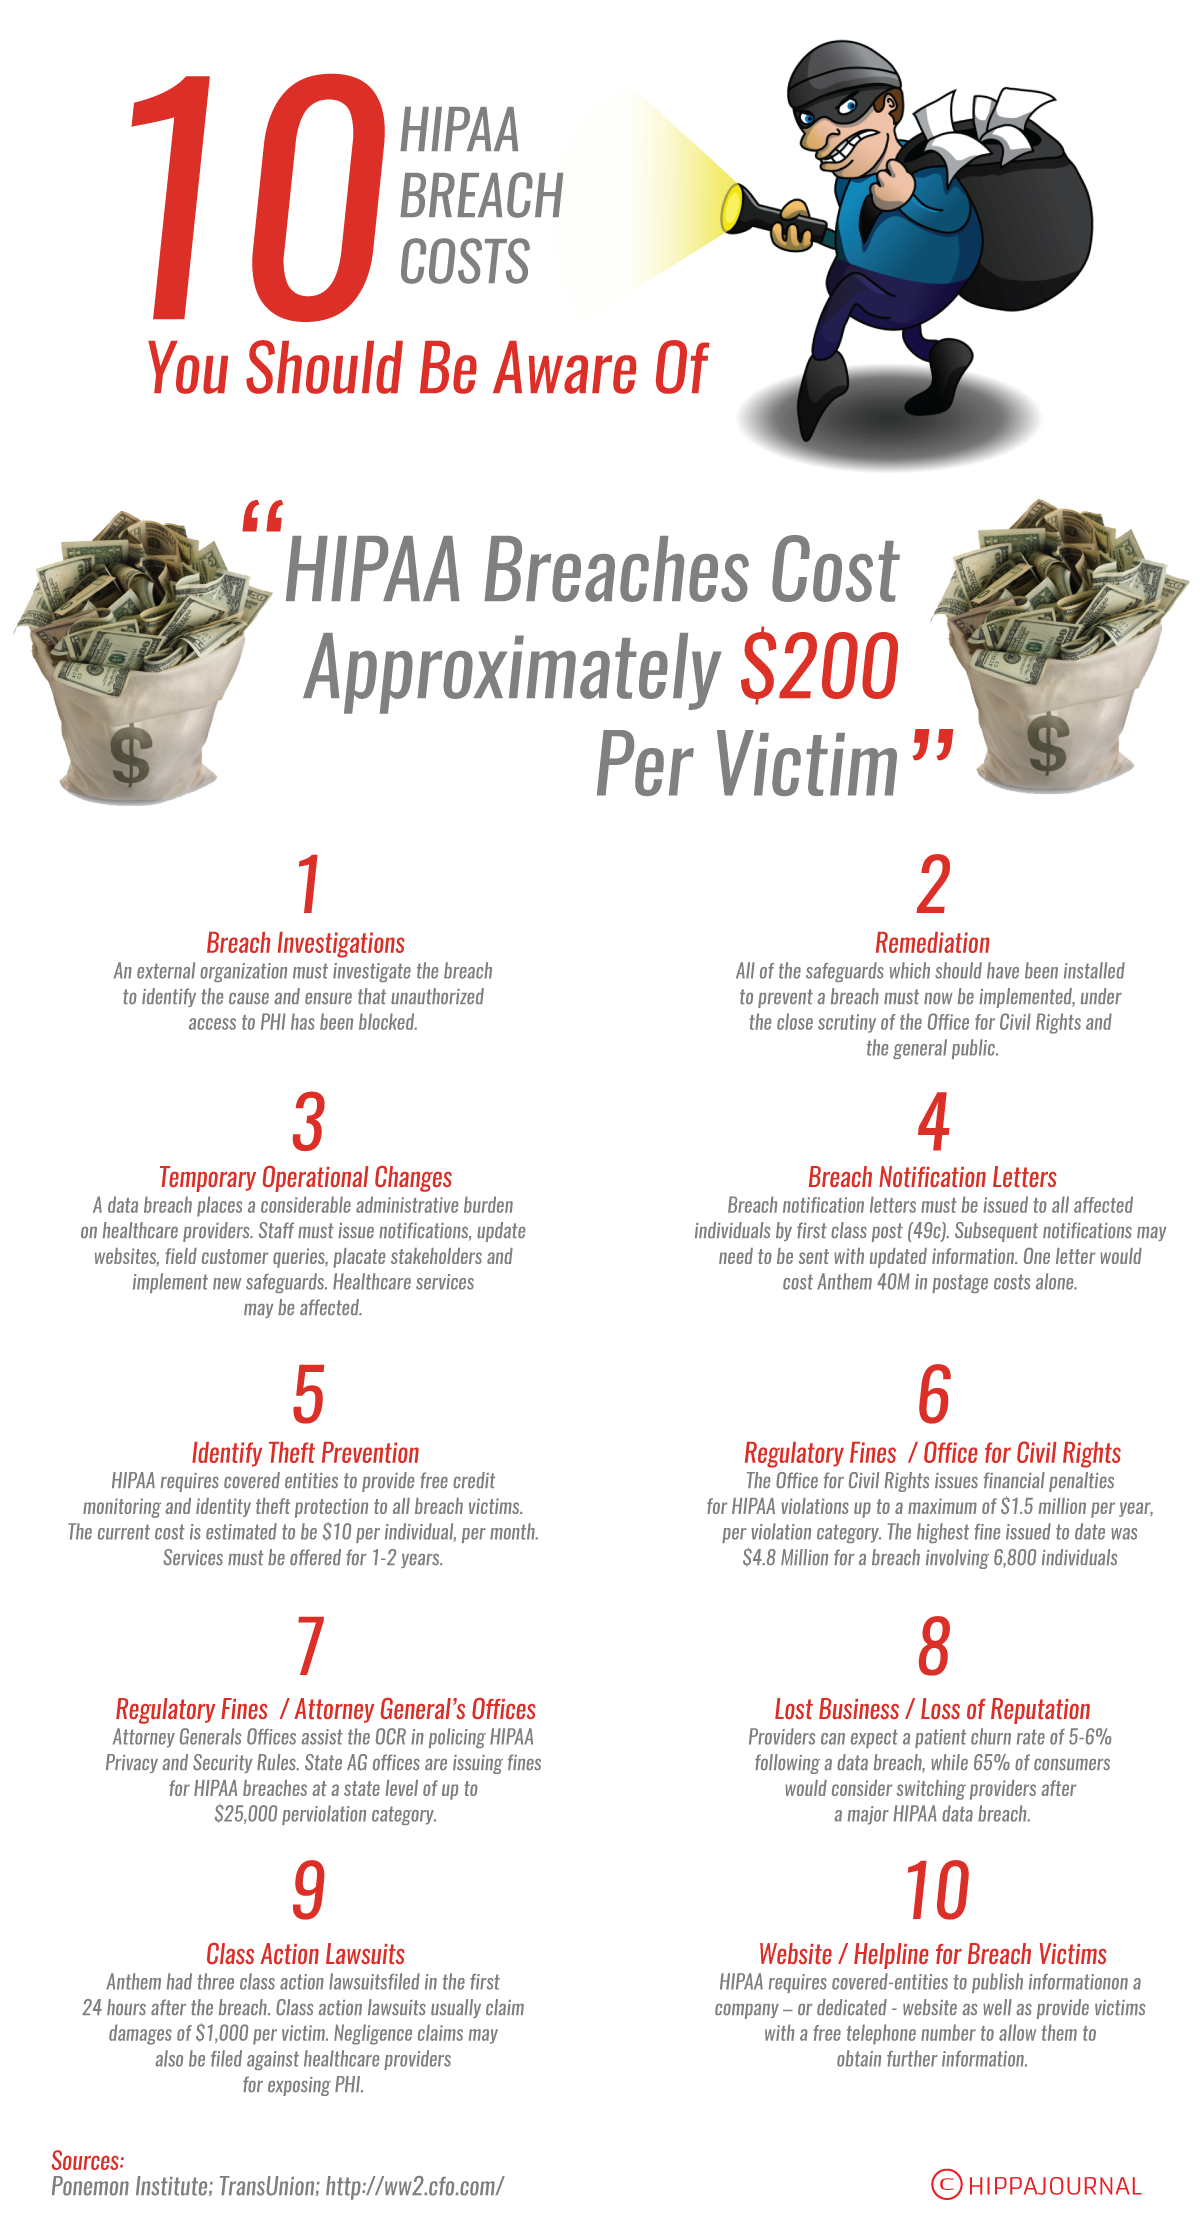 hipaajournal-hidden-data-breach-costs